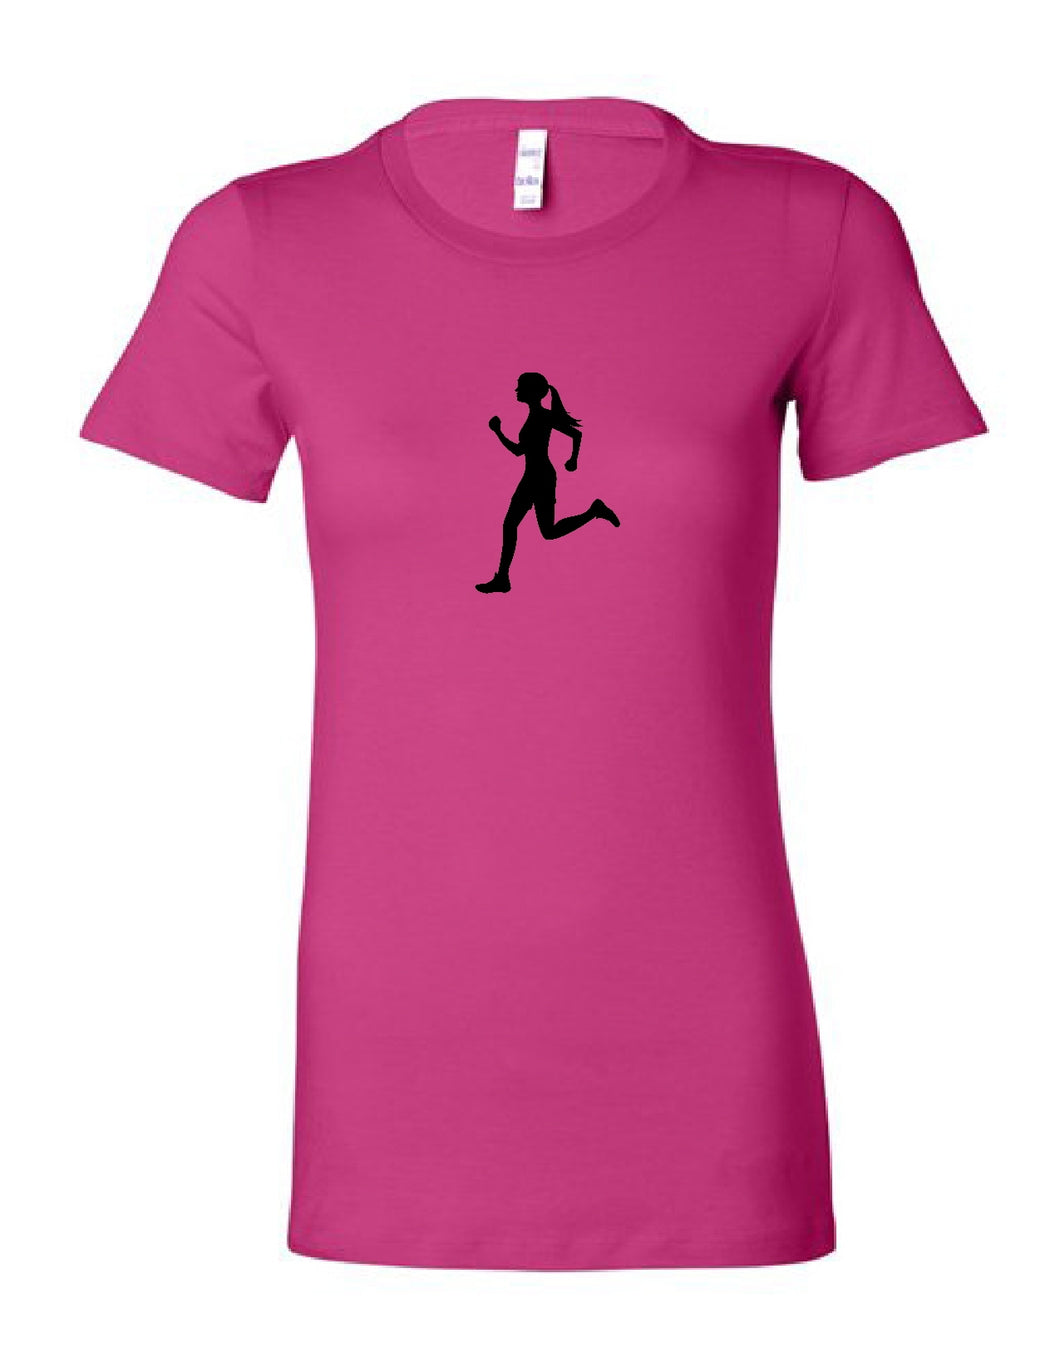 Runner Chick Slim Fit Women's T-Shirt